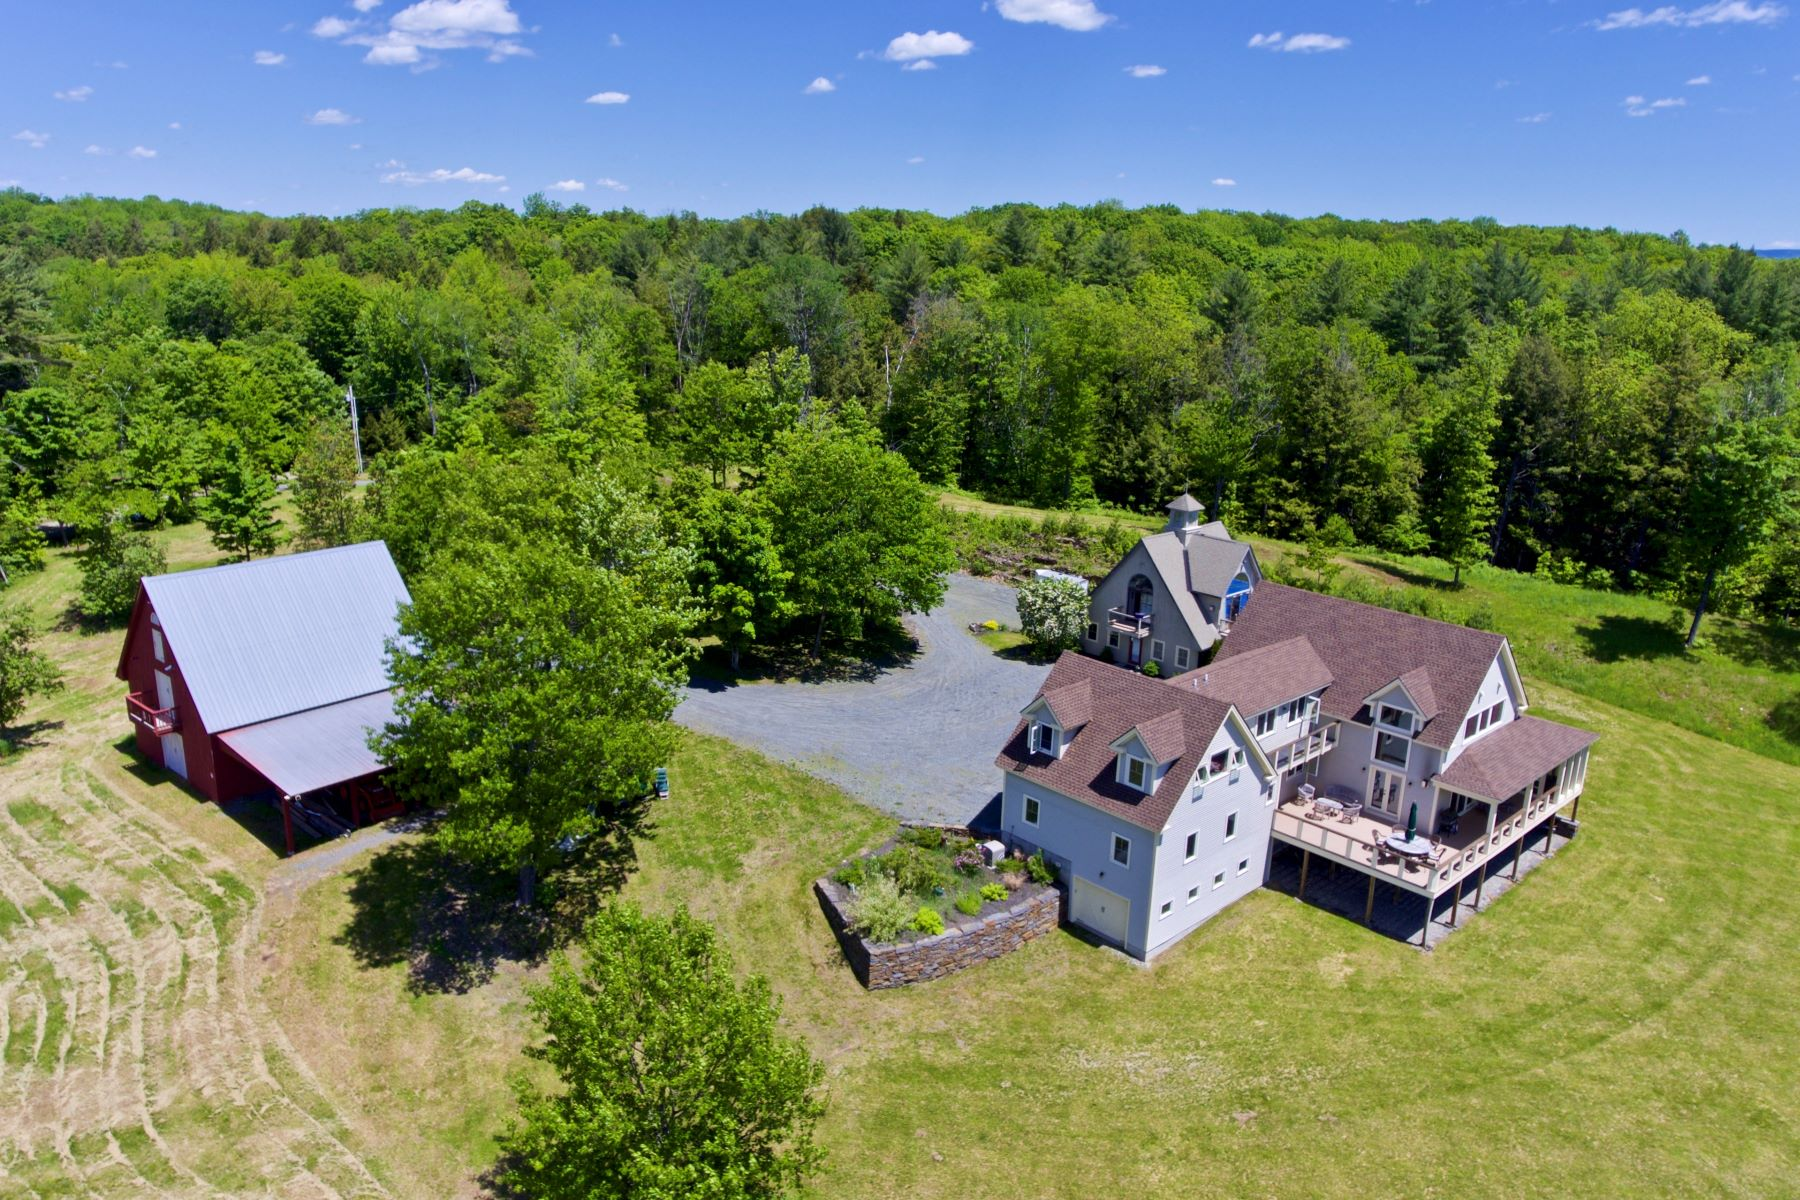 Single Family Homes for Sale at 38 Tinkham Hill Road, Hartland 38 Tinkham Hill Rd Hartland, Vermont 05048 United States